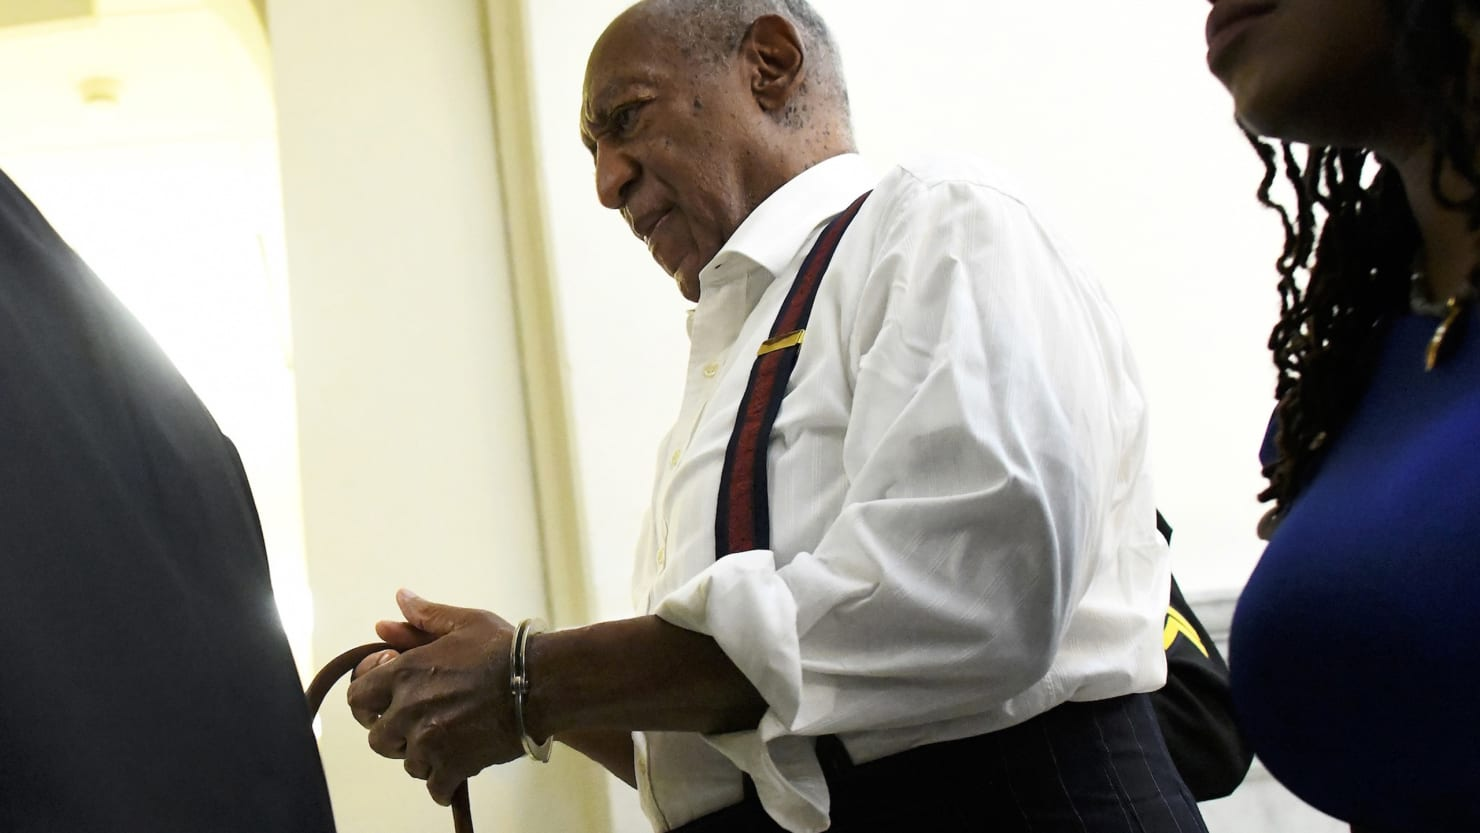 Bill Cosby sentenced to 3 to 10 years in prison for sexual assault pictures